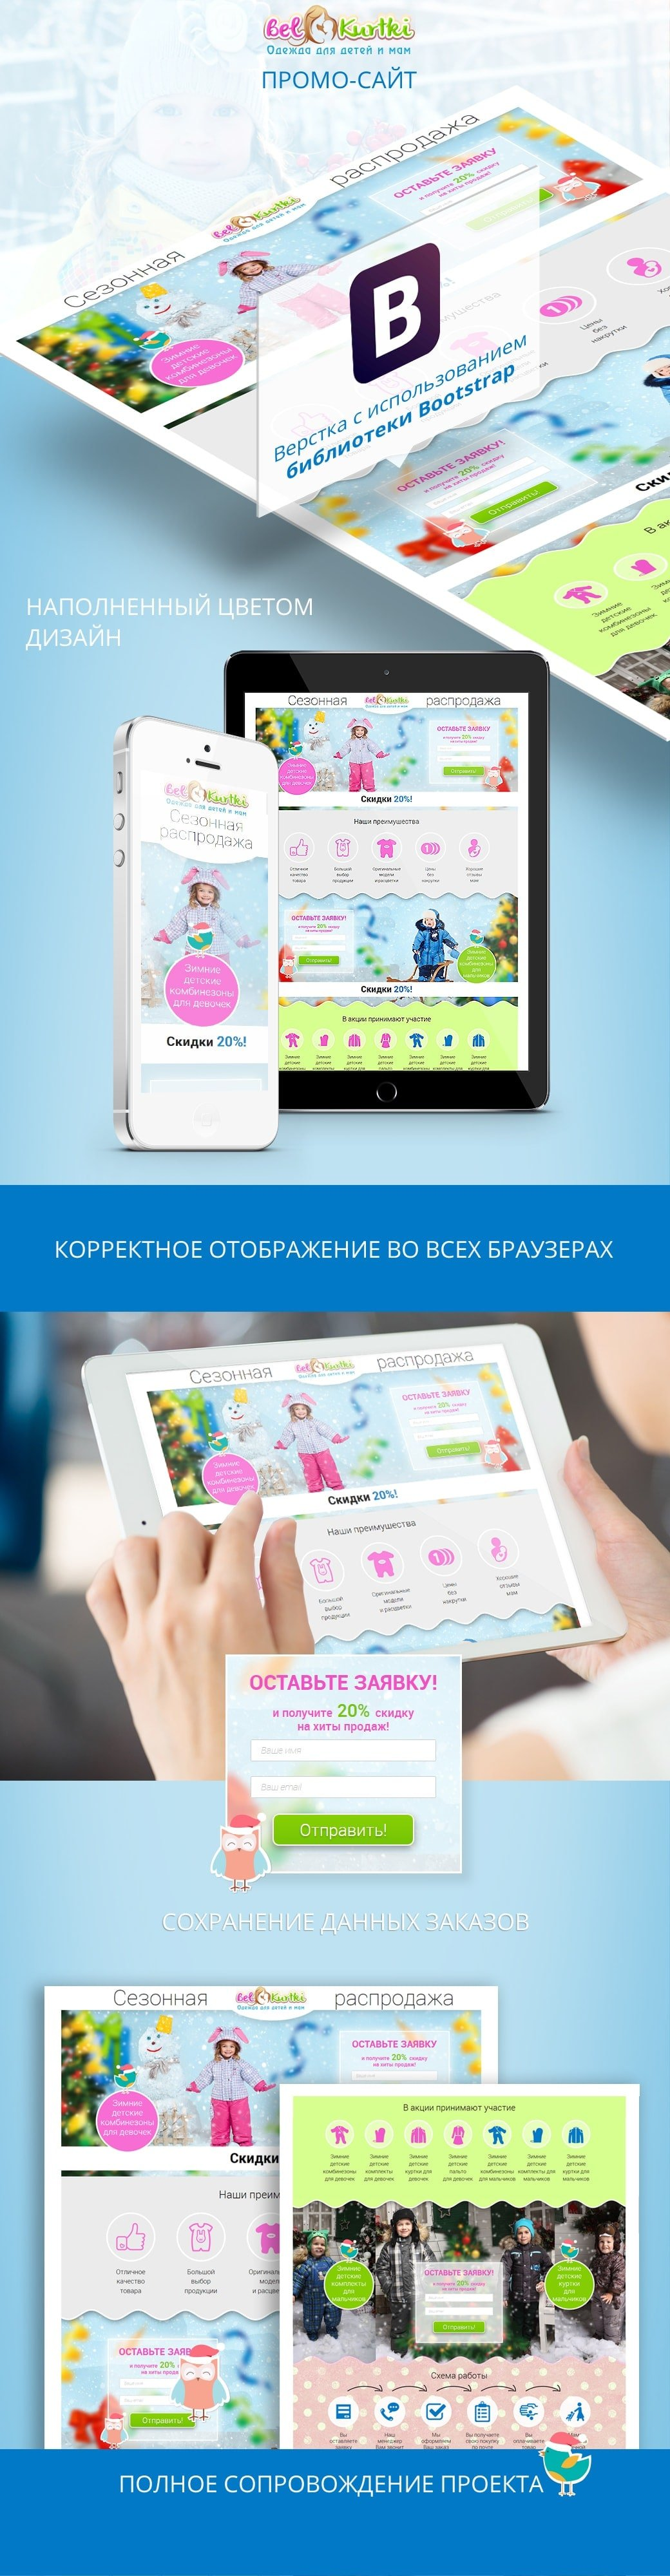 Promo page implementation for online-shop belkurtki.ru season-sales and connect to shop processing